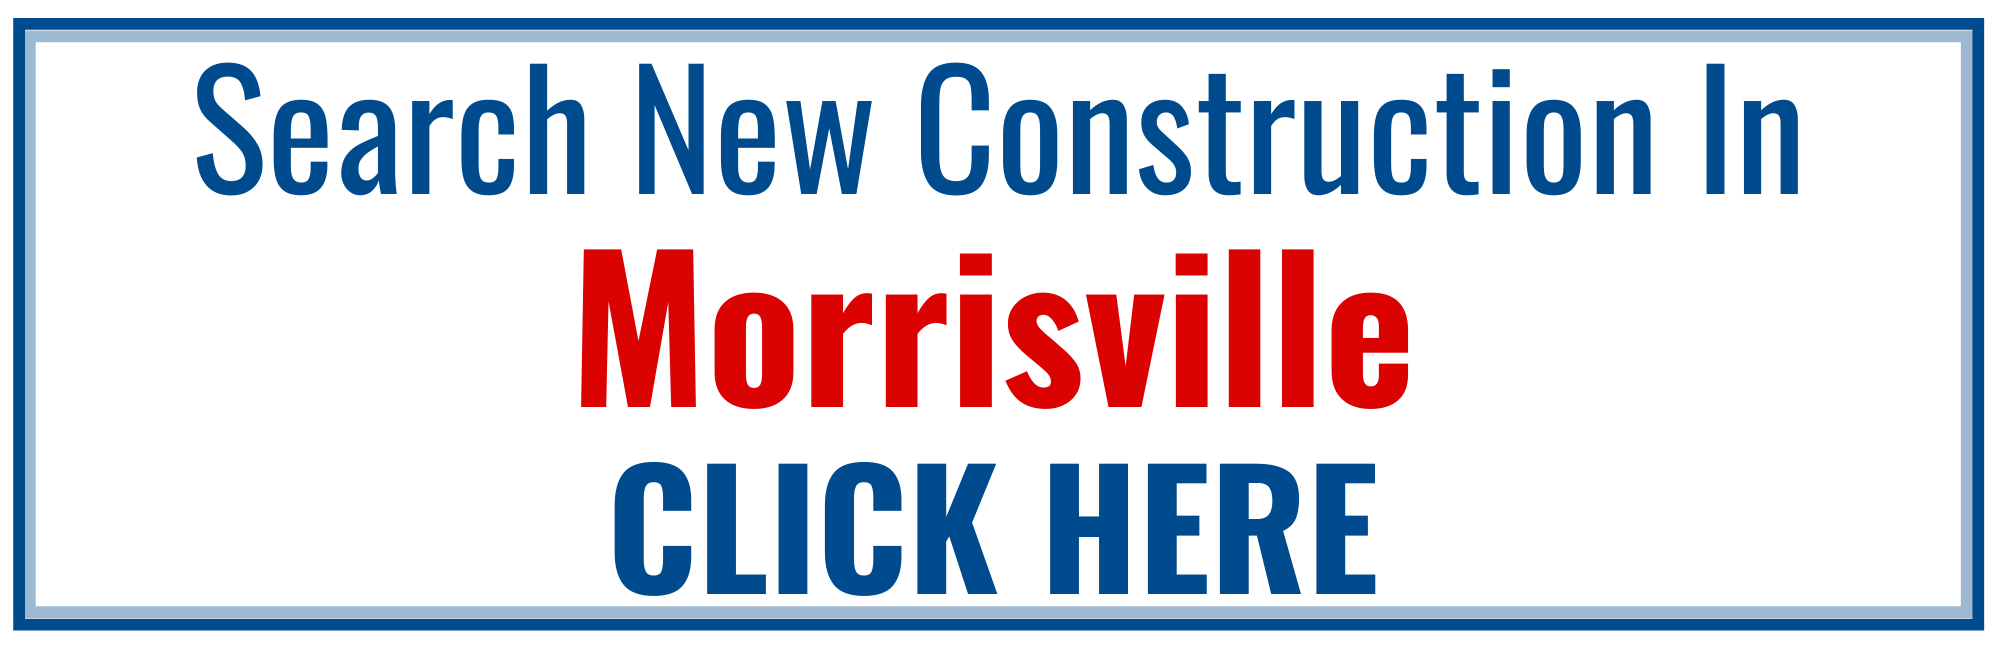 Morrisville New Construction